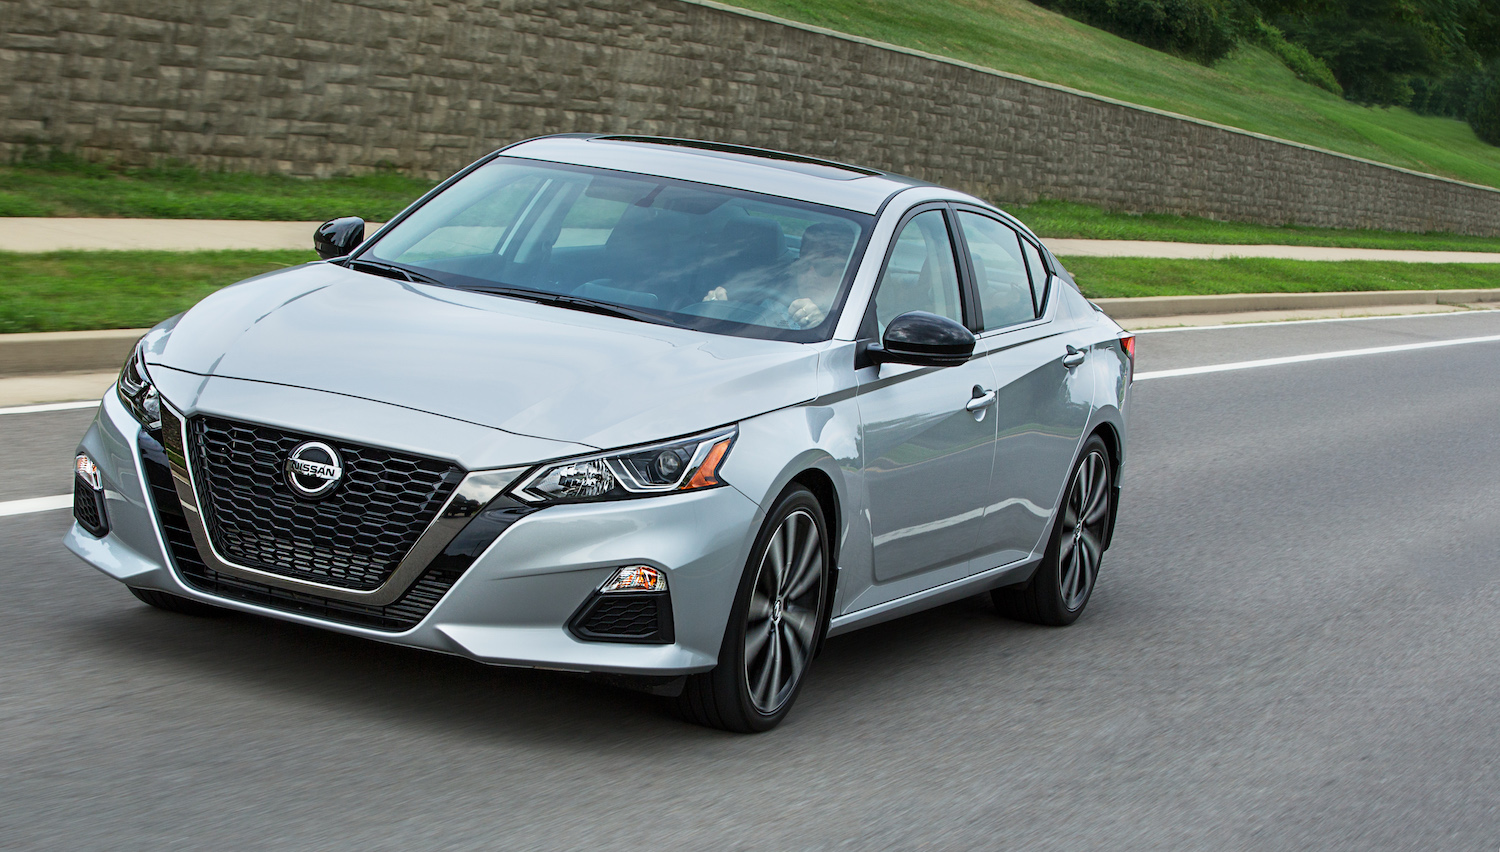 2019 Nissan Altima Expert Review: Doubling Down on Tech ...